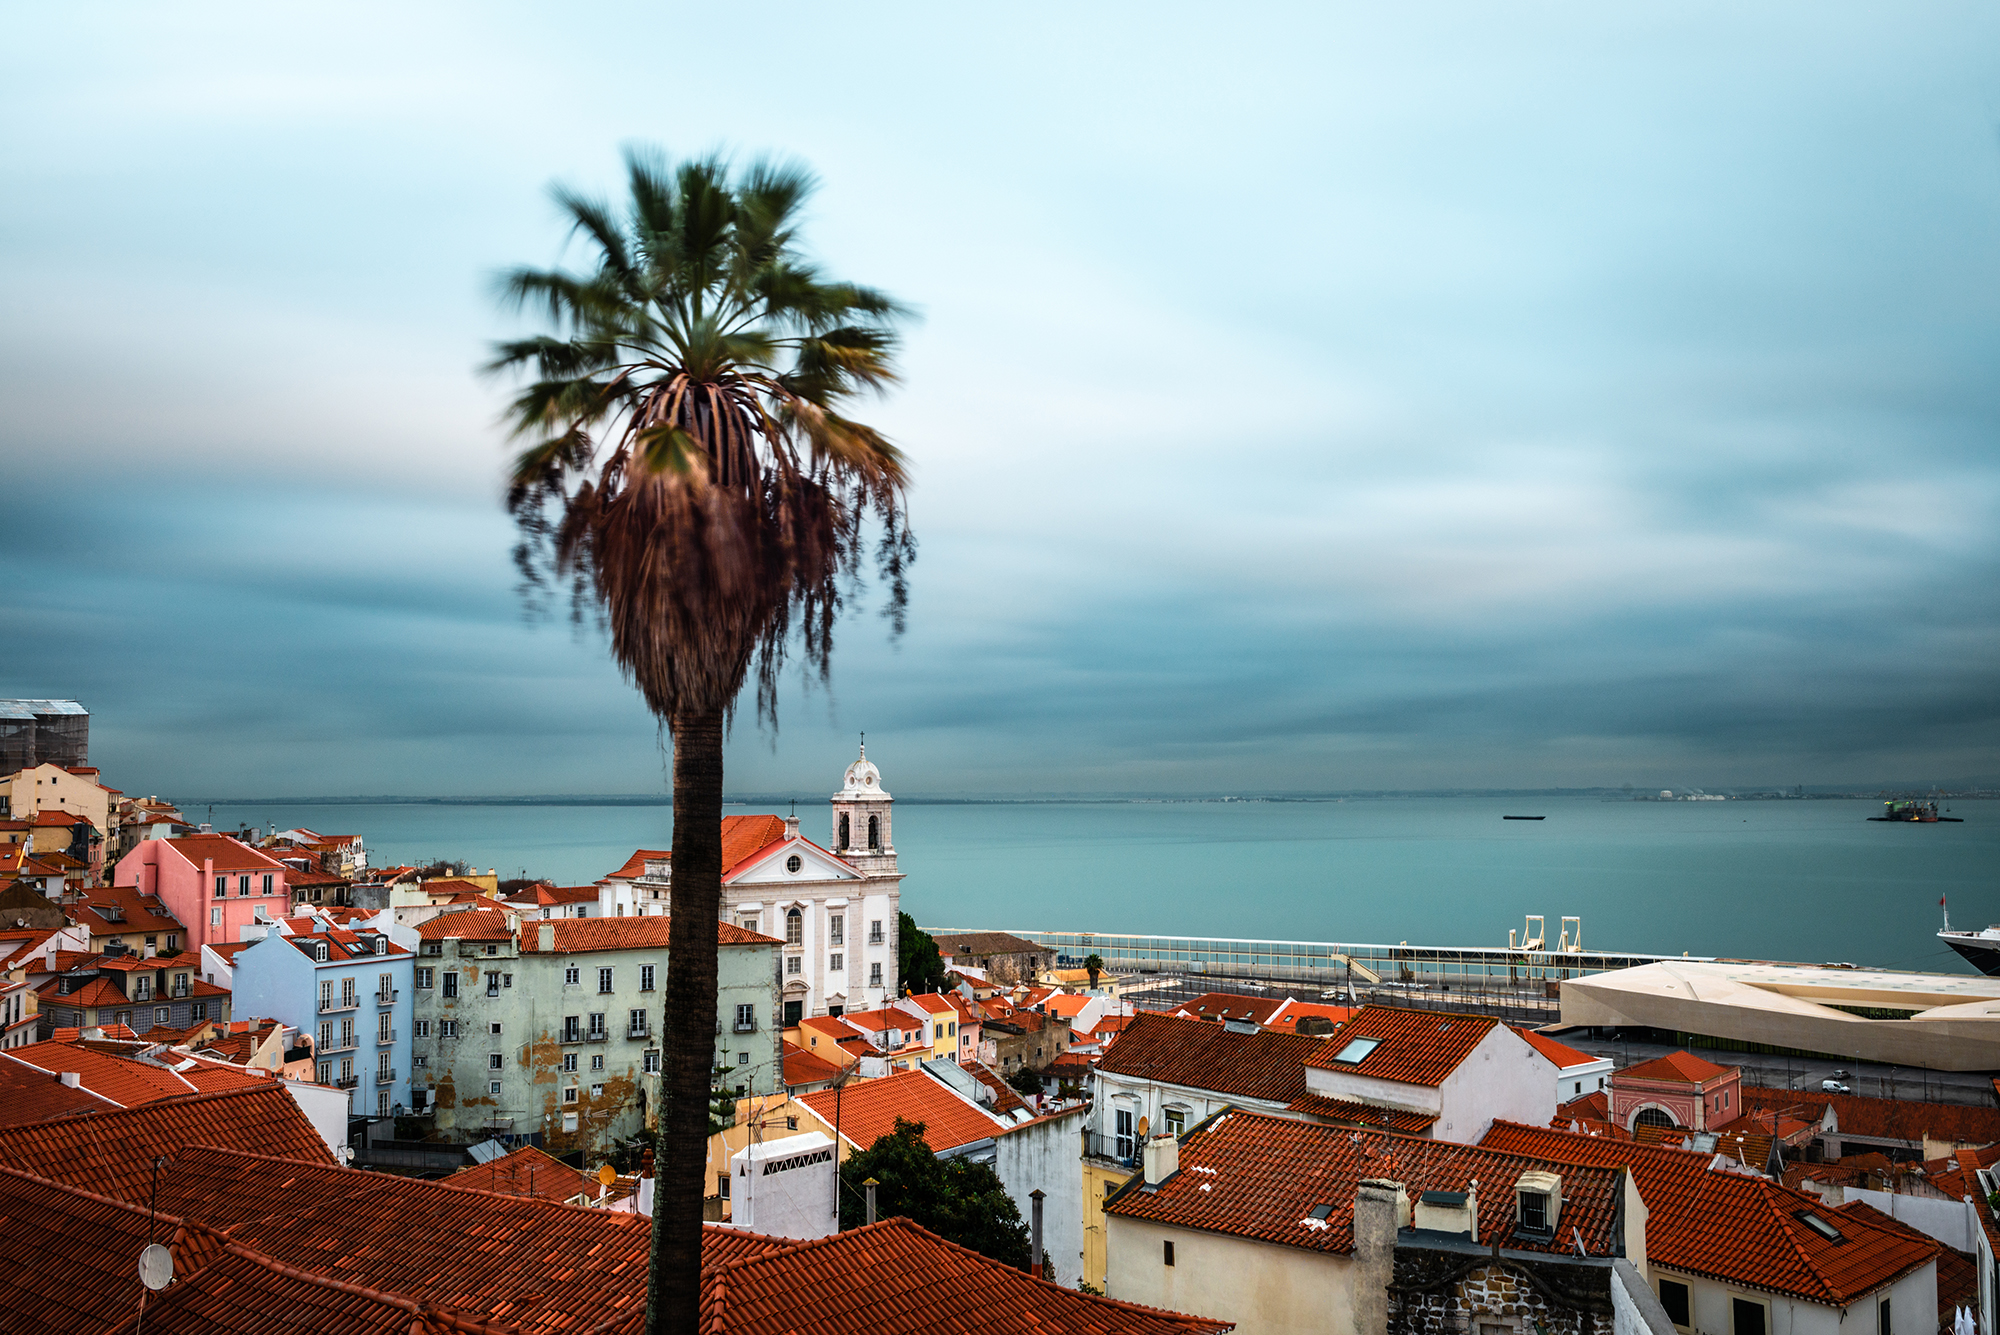 Panorama view of the rooftops of Alfama district in Lisbon